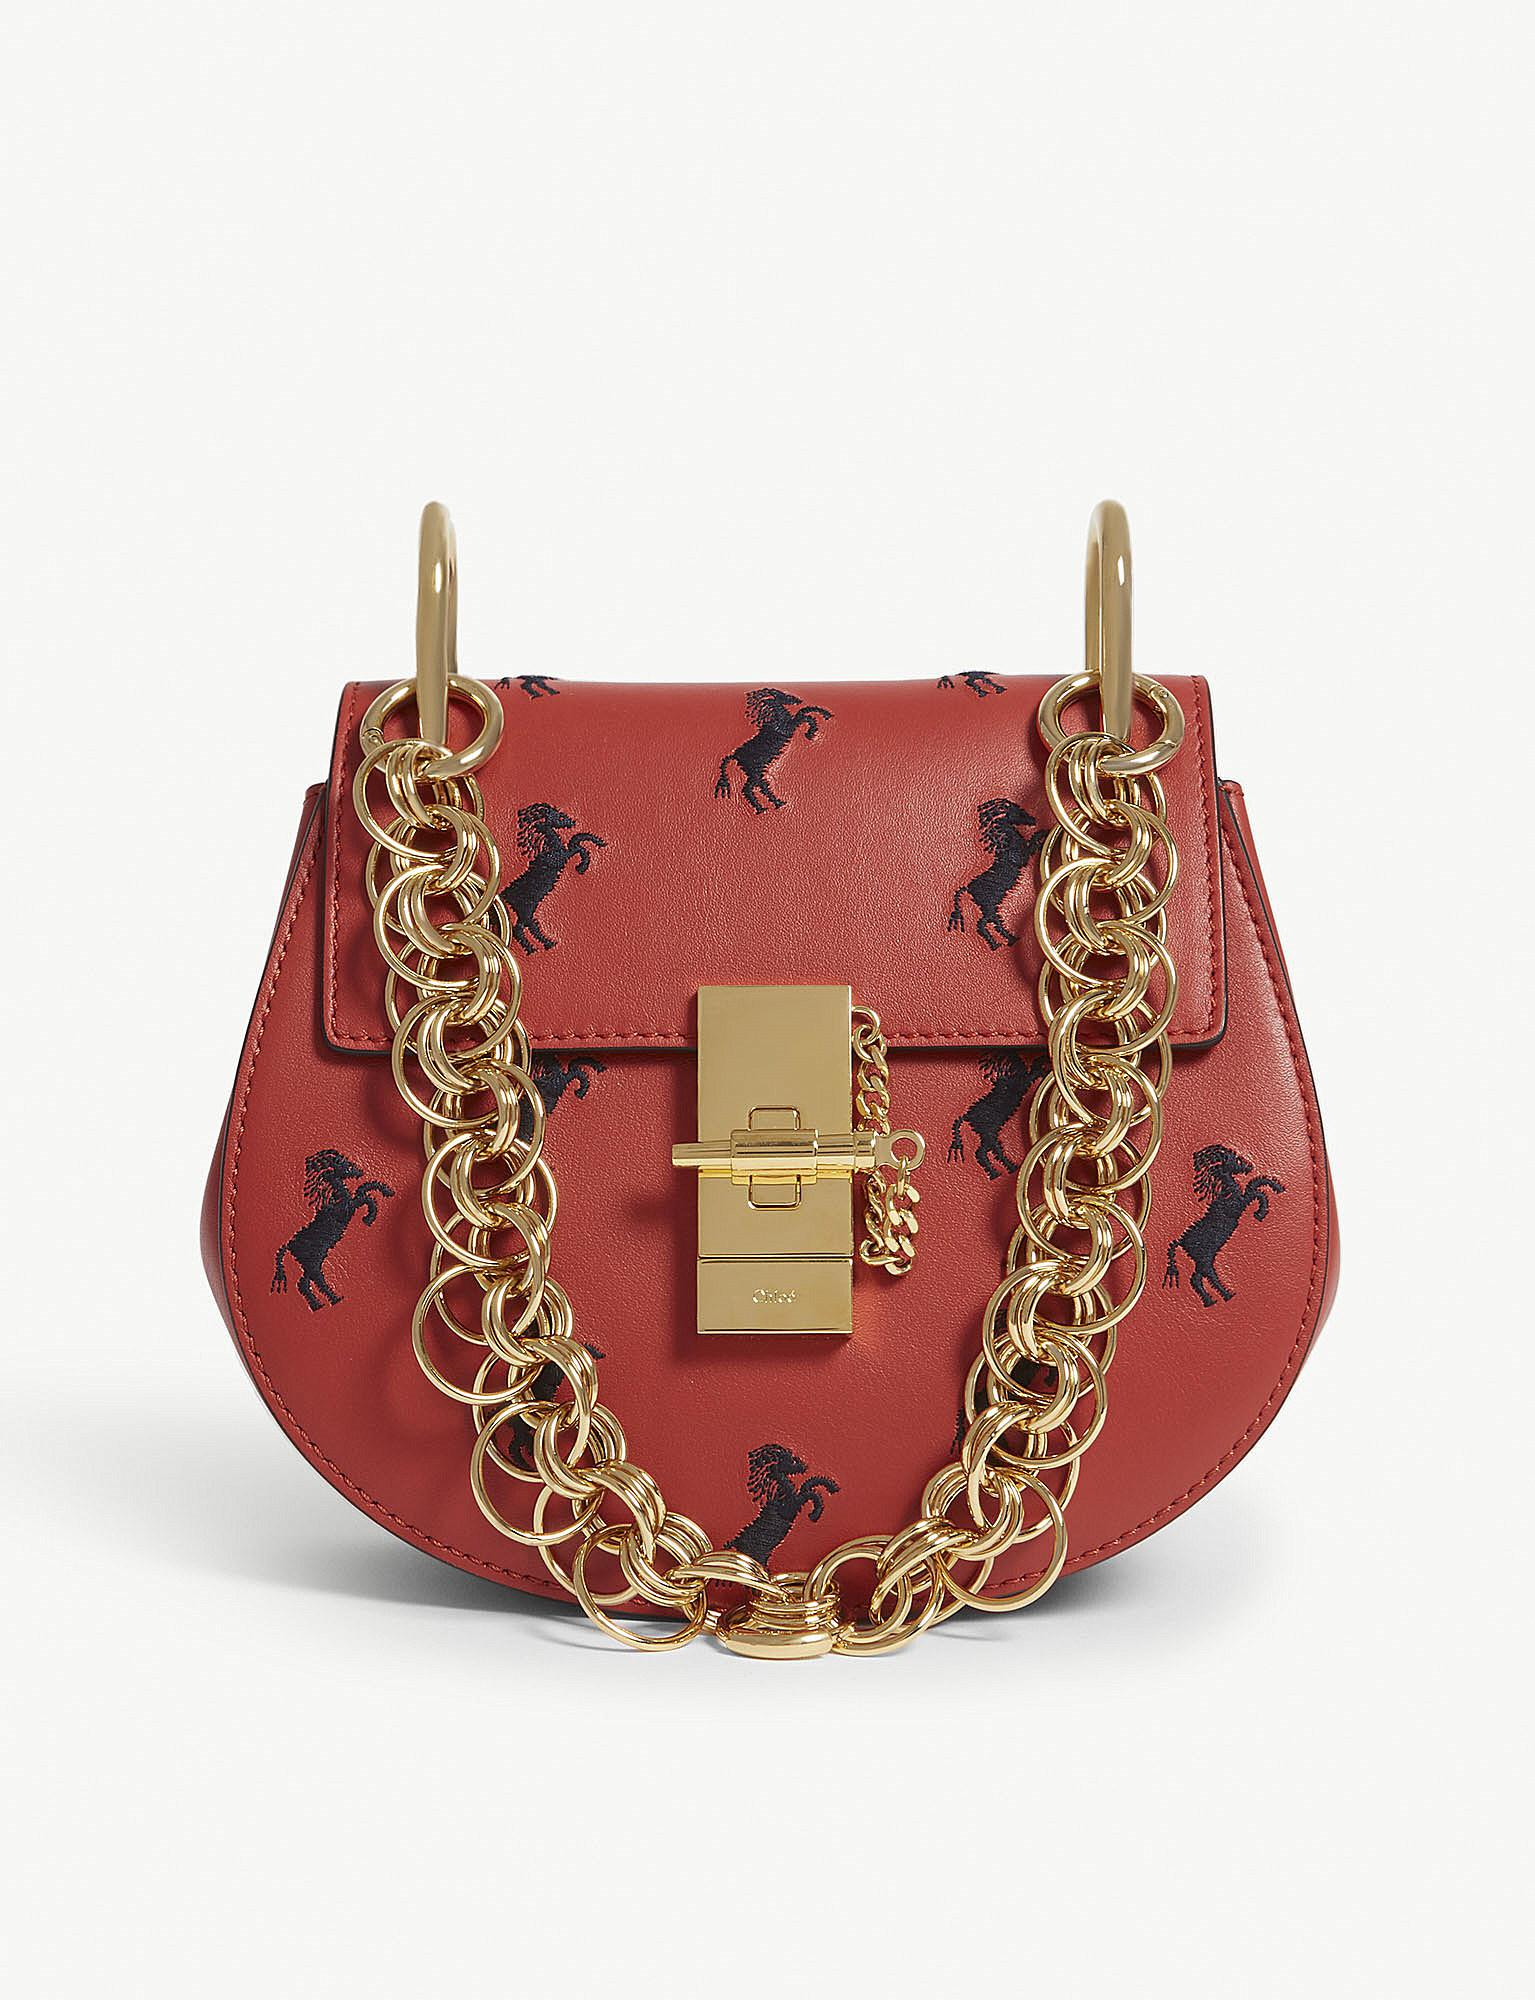 3b9b56054fdb Chloé Earthy Red Heart Embroidered Drew Bijou Leather Bag in Red - Lyst